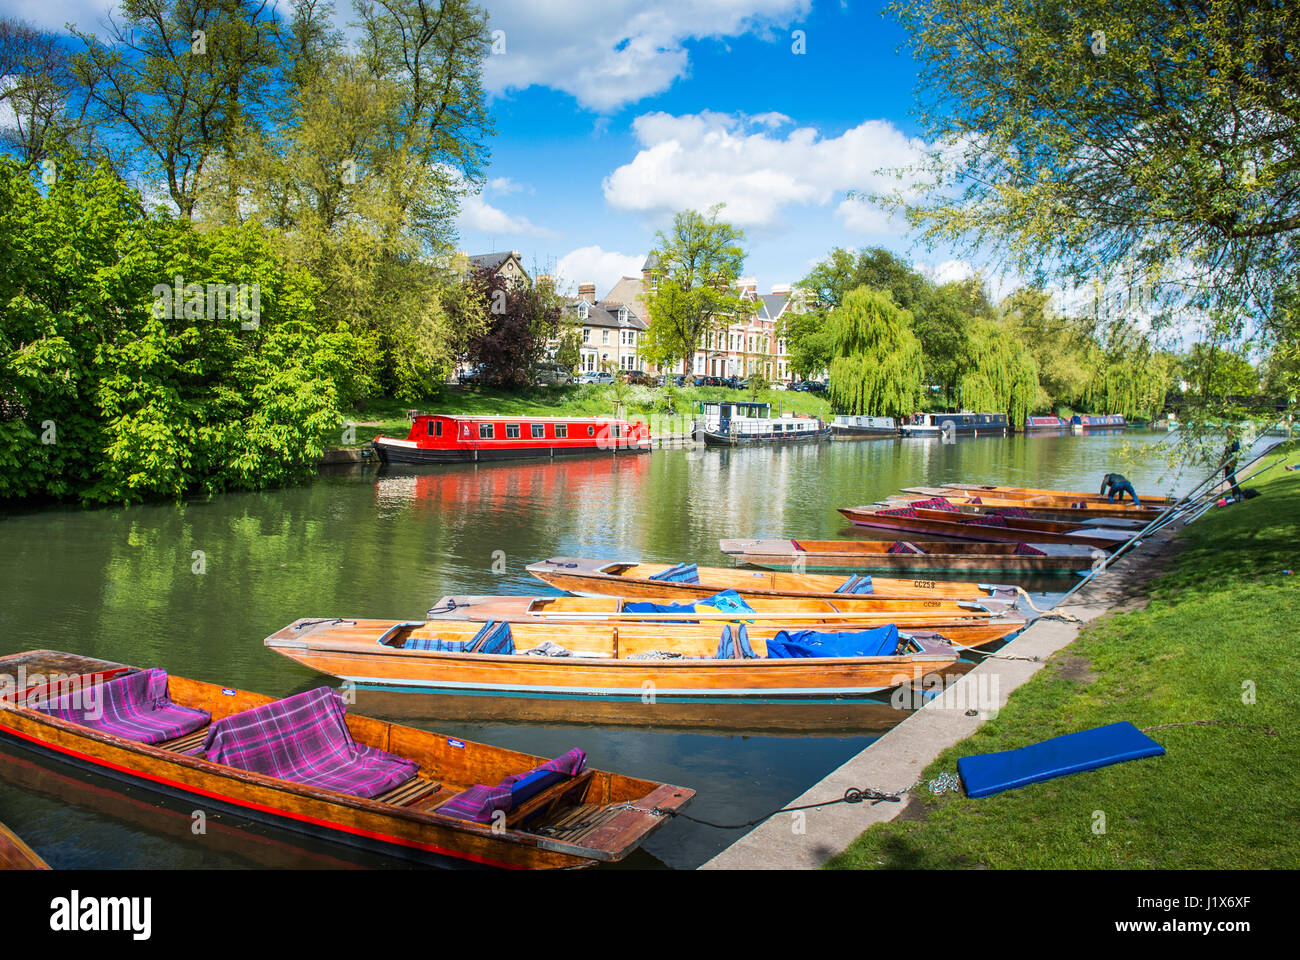 Punting on a river in Cambridge England UK - Stock Image